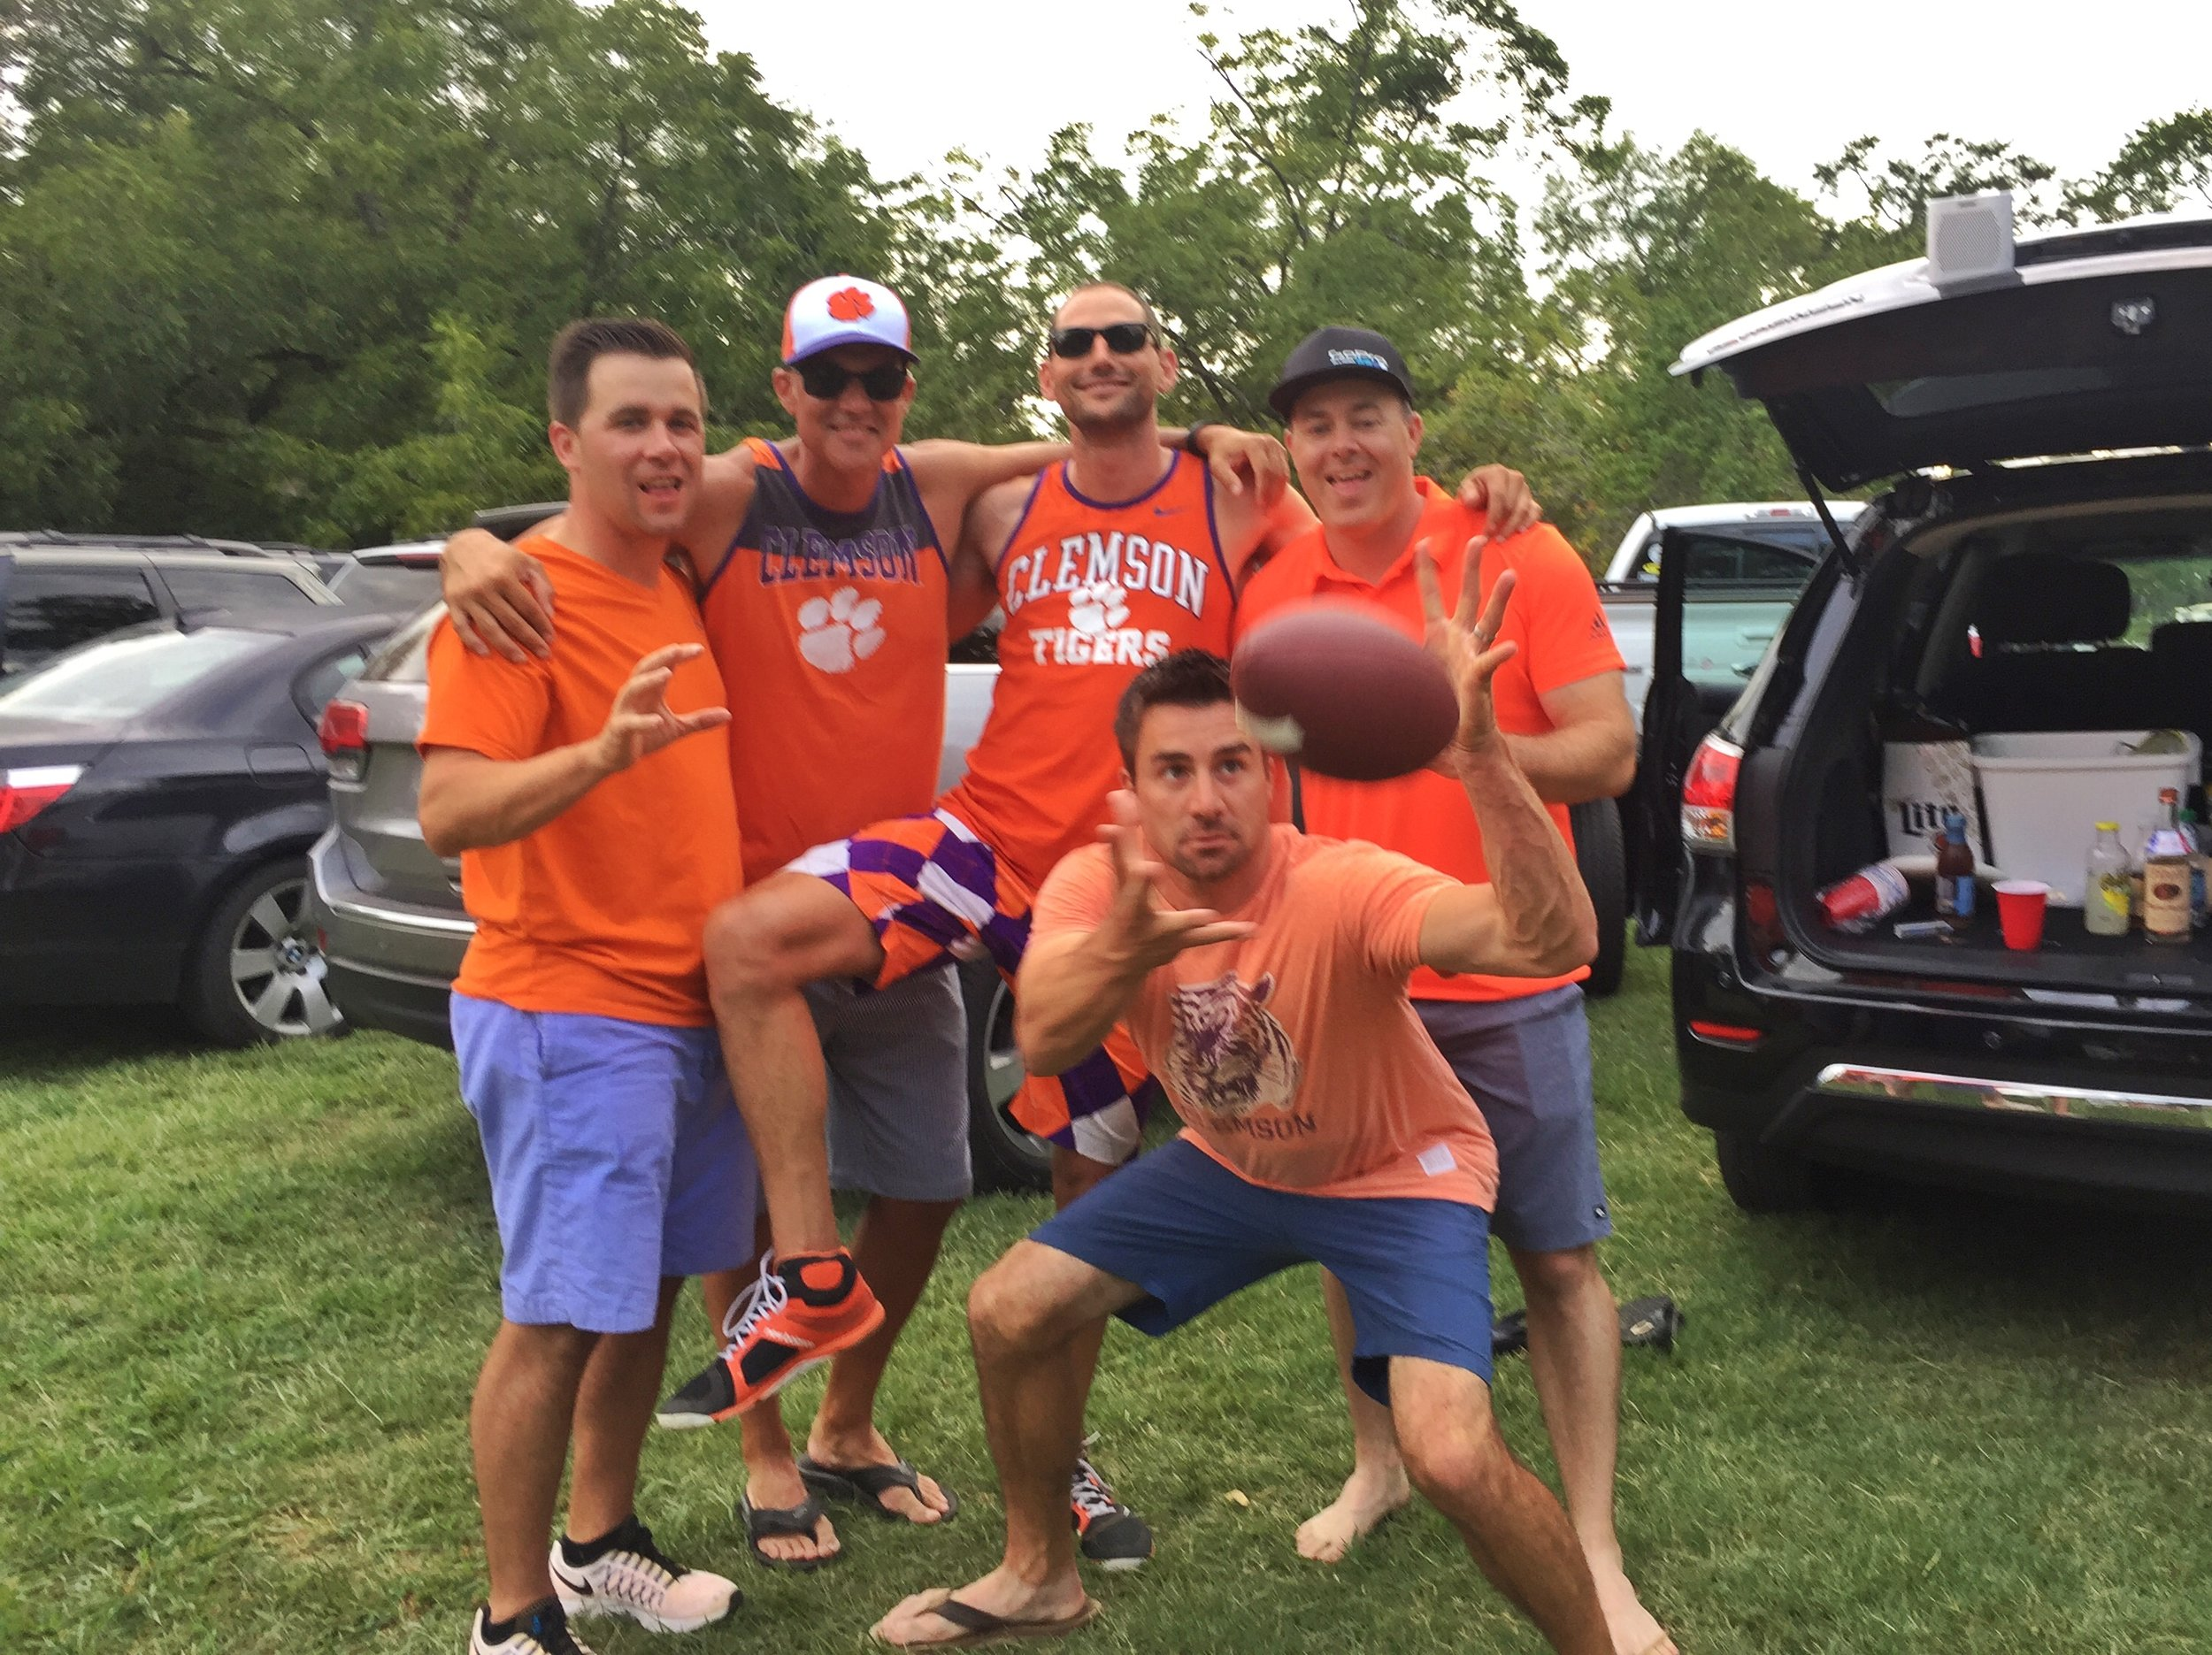 A stong tailgate scene unfolds at Auburn. University